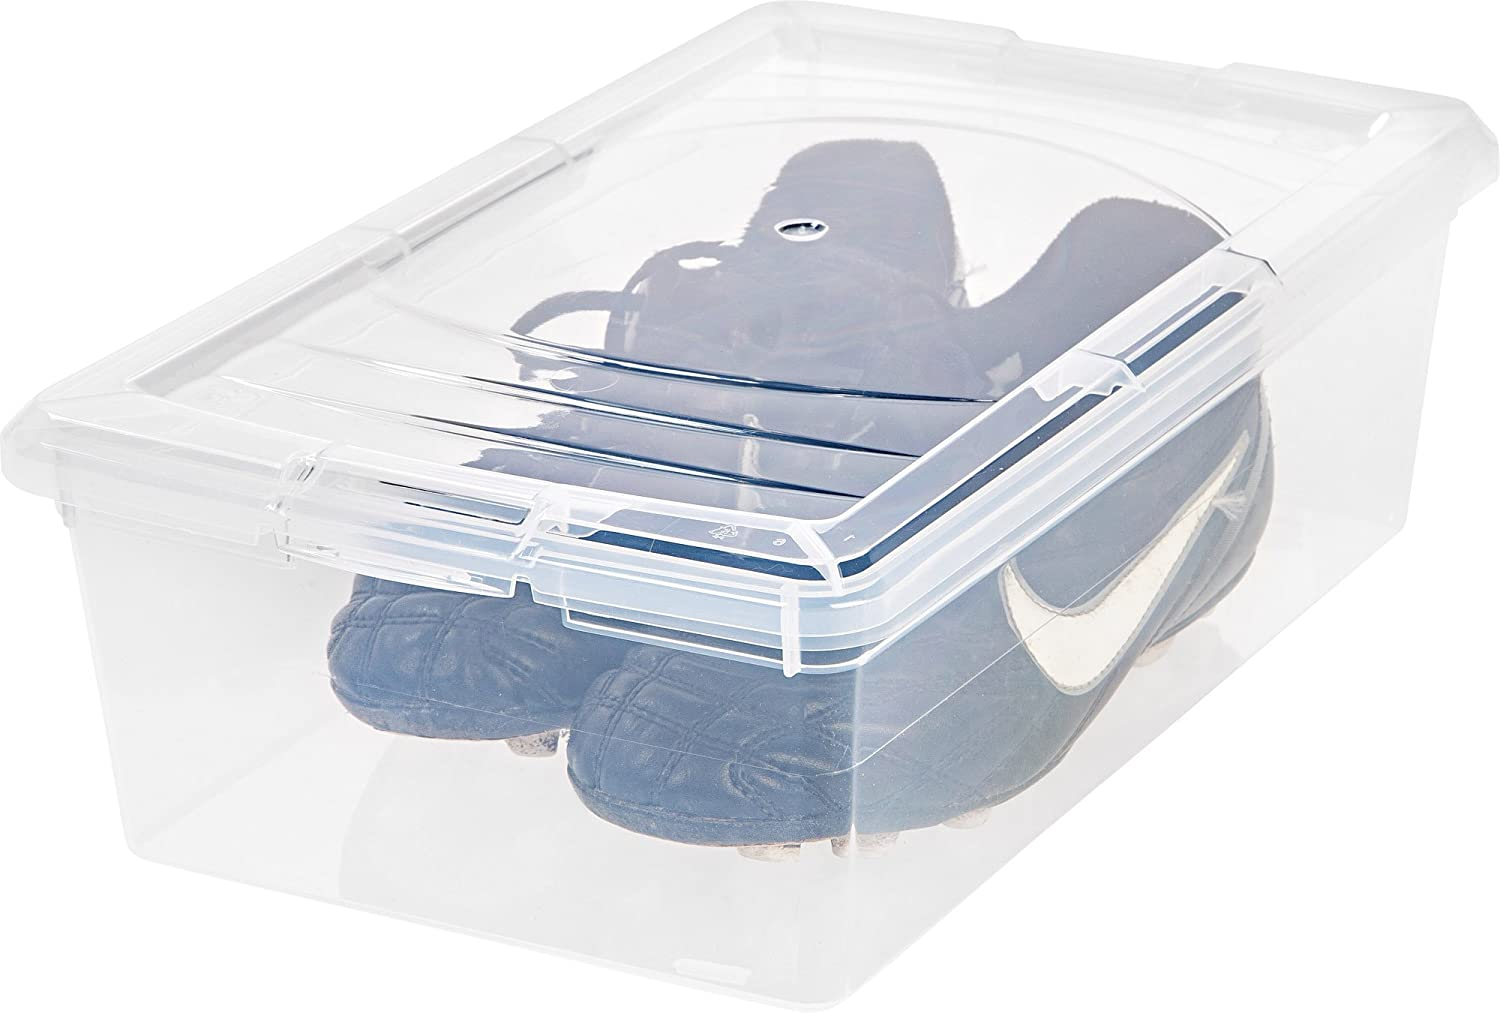 sc 1 st  Amazon.com & Amazon.com: IRIS Clear Modular Shoe Box 6 QT 12 Pack: Home u0026 Kitchen